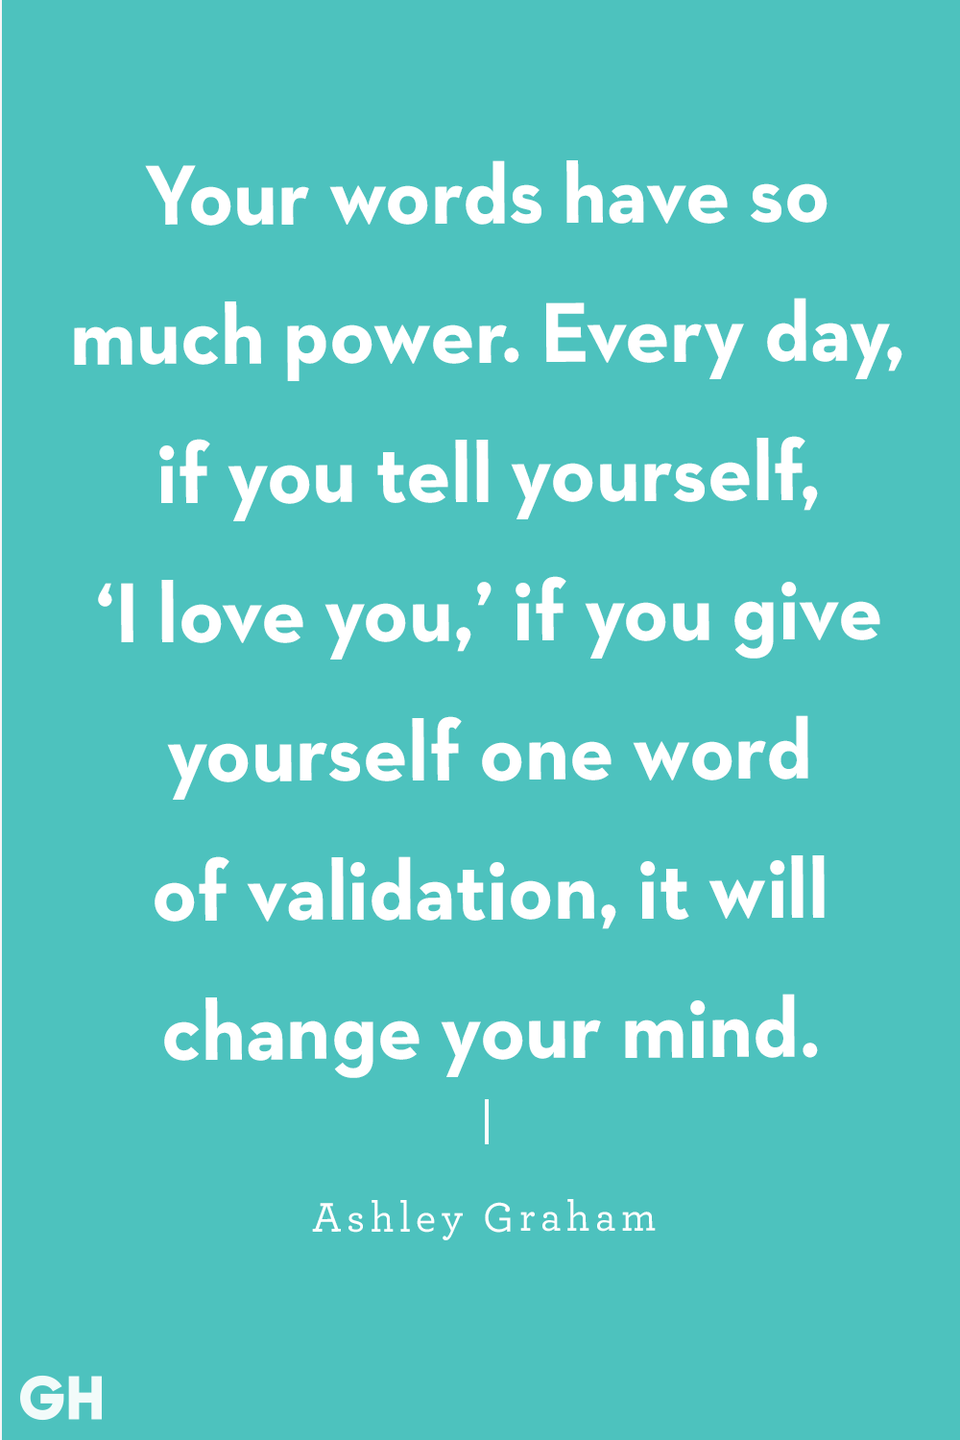 "<p>""Your words have so much power. Every day, if you tell yourself, 'I love you,' if you give yourself one word of validation, it will change your mind."" </p>"